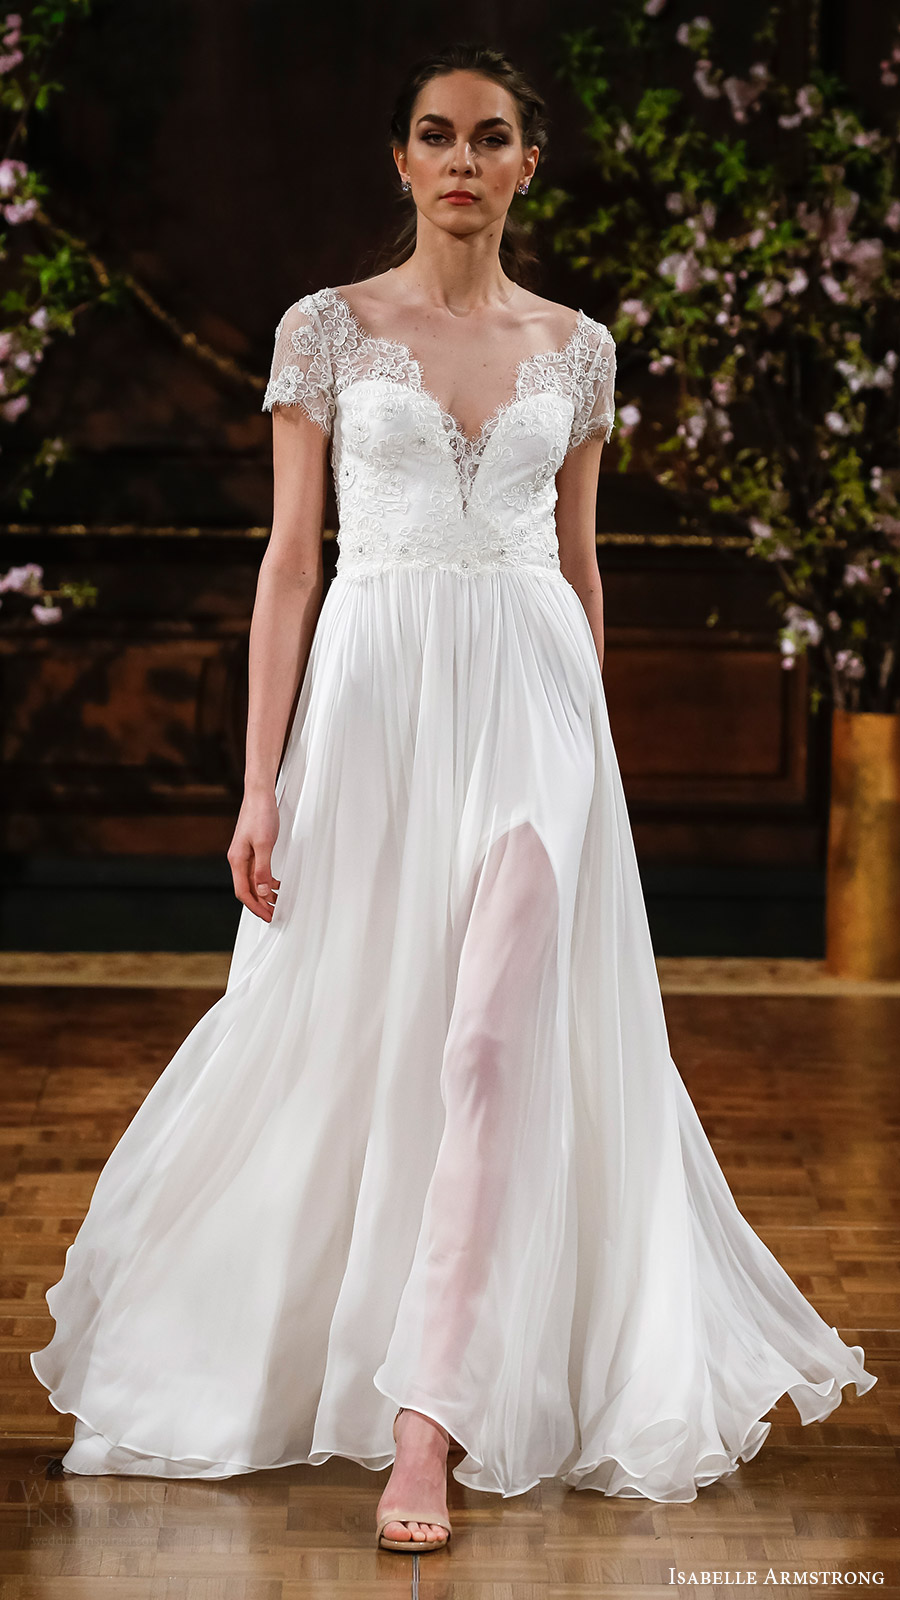 isabelle armstrong bridal spring 2017 illusion short sleeves sweetheart aline wedding dress (kaitlyn) mv slit skirt